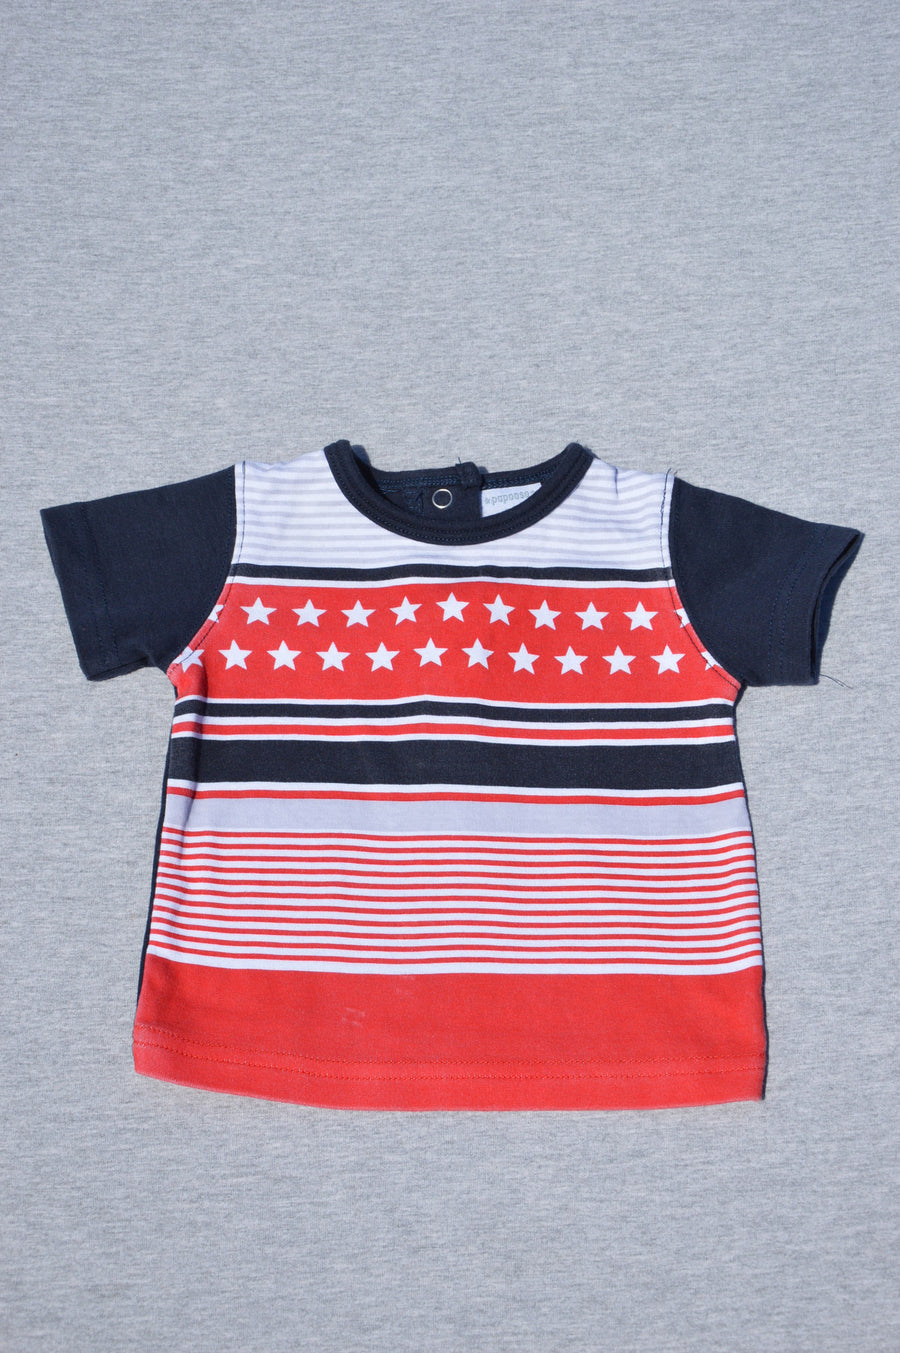 Papoose - nearly new - navy patterned t-shirt, size 6-12m